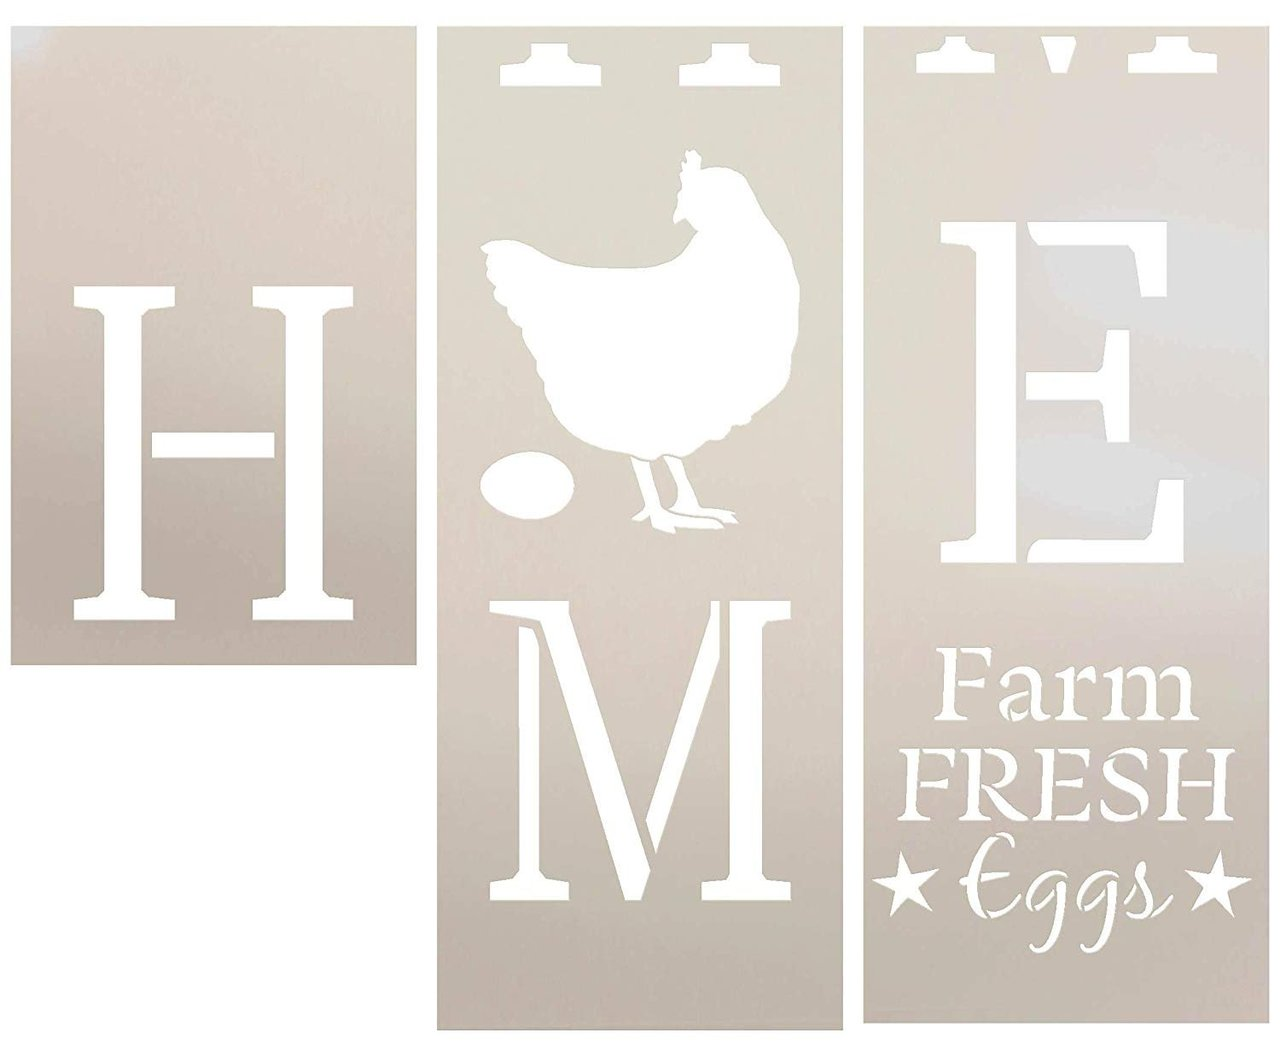 Home Tall Porch Stencil with Chicken by StudioR12 | 3 Piece | Farm Fresh Eggs | DIY Large Vertical Country Farmhouse Outdoor Decor | Craft & Paint Wood Leaner Sign | Reusable Mylar Template | Size 6ft